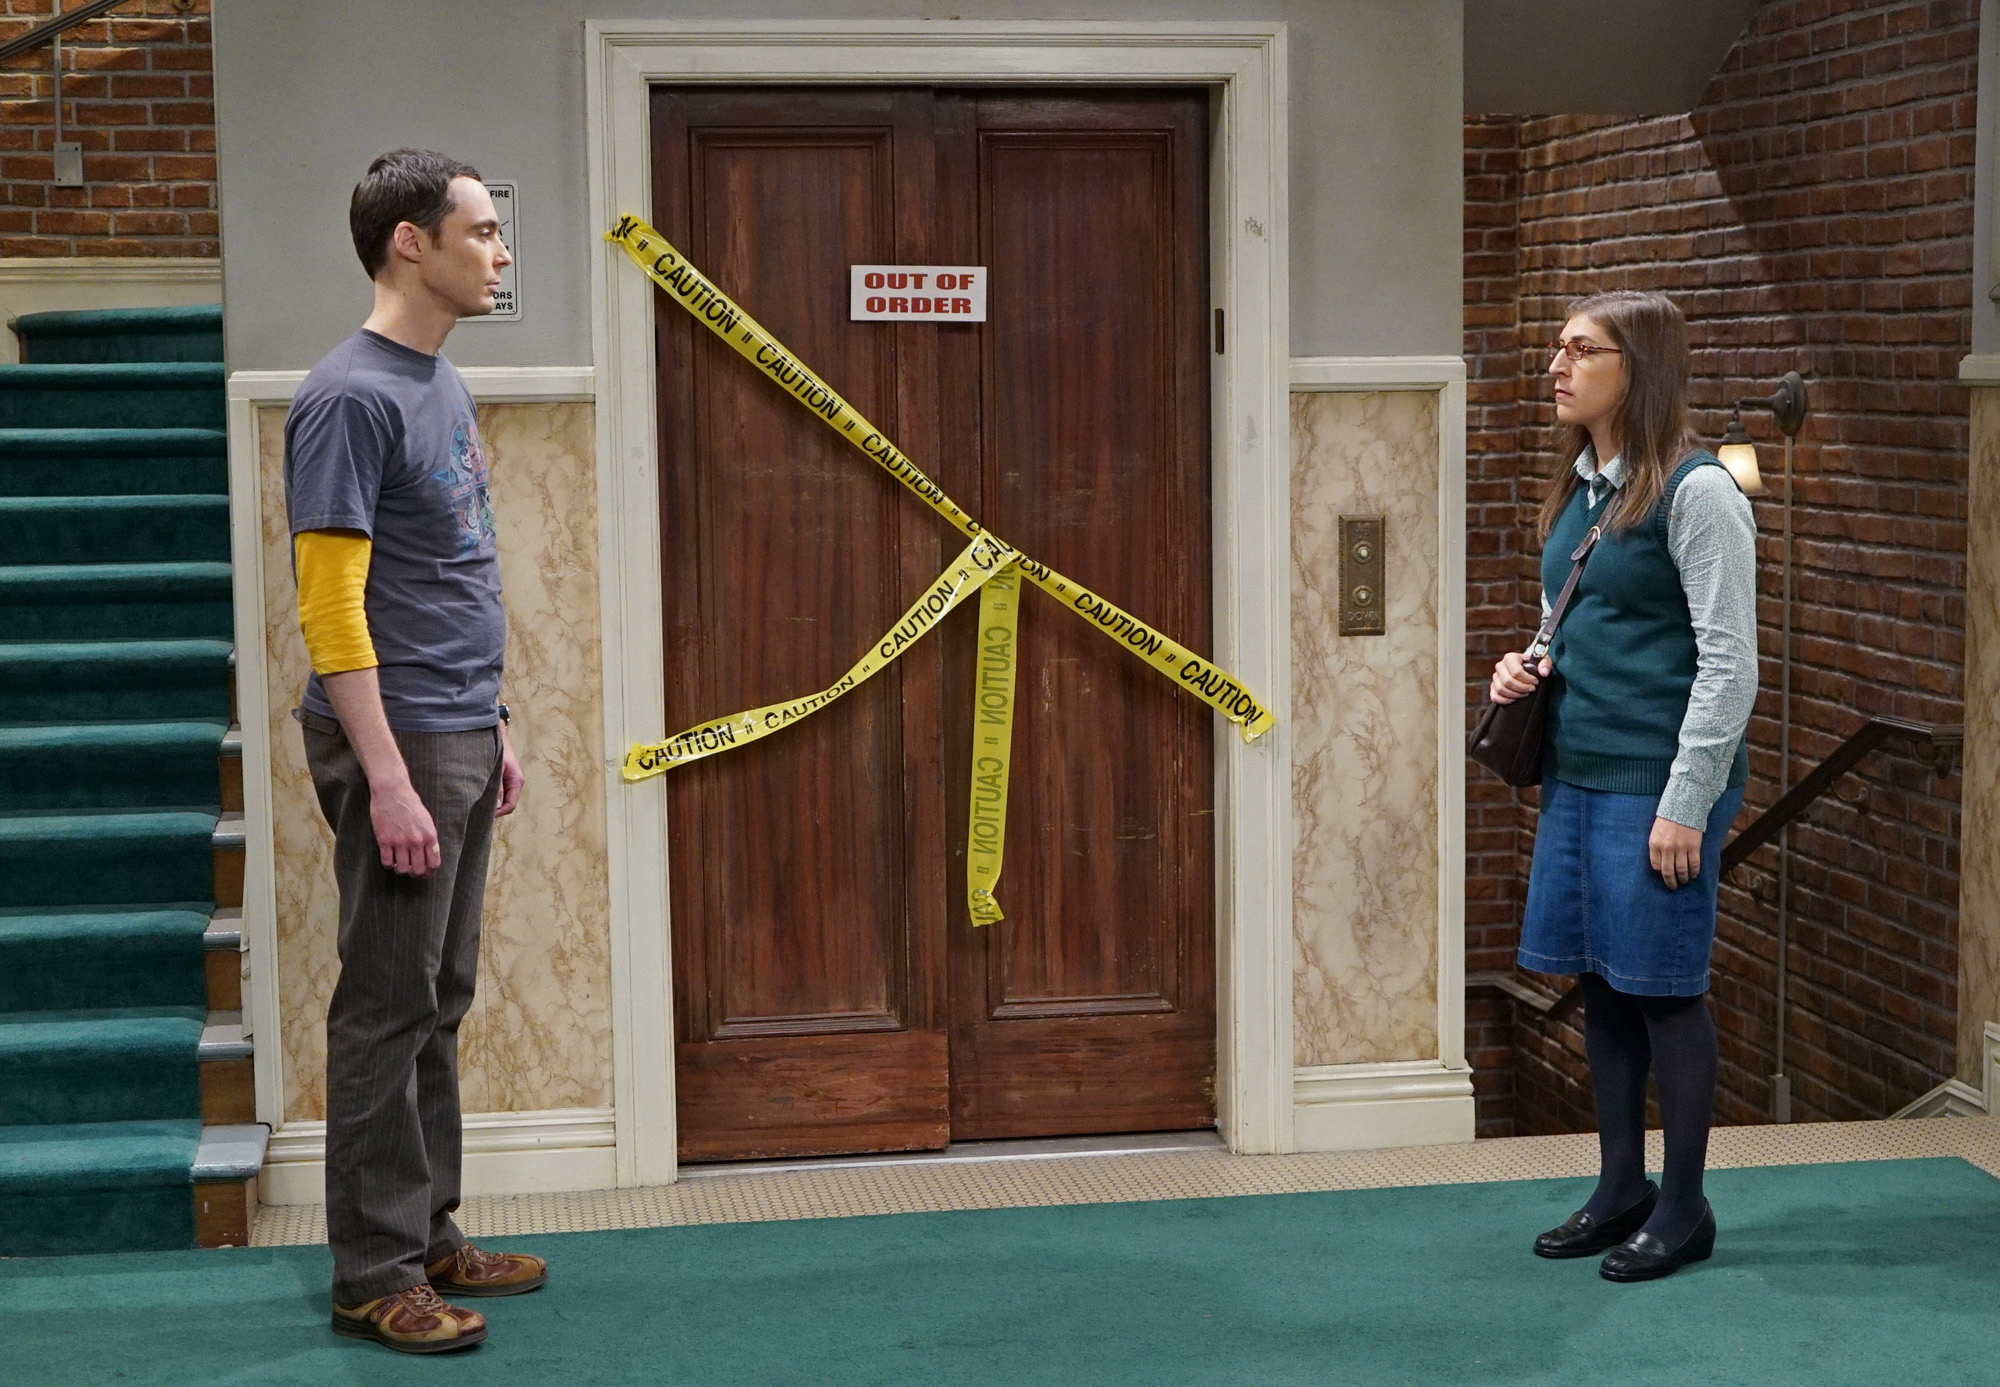 Sheldon and Amy run into each other in the hallway and an awkward moment ensues